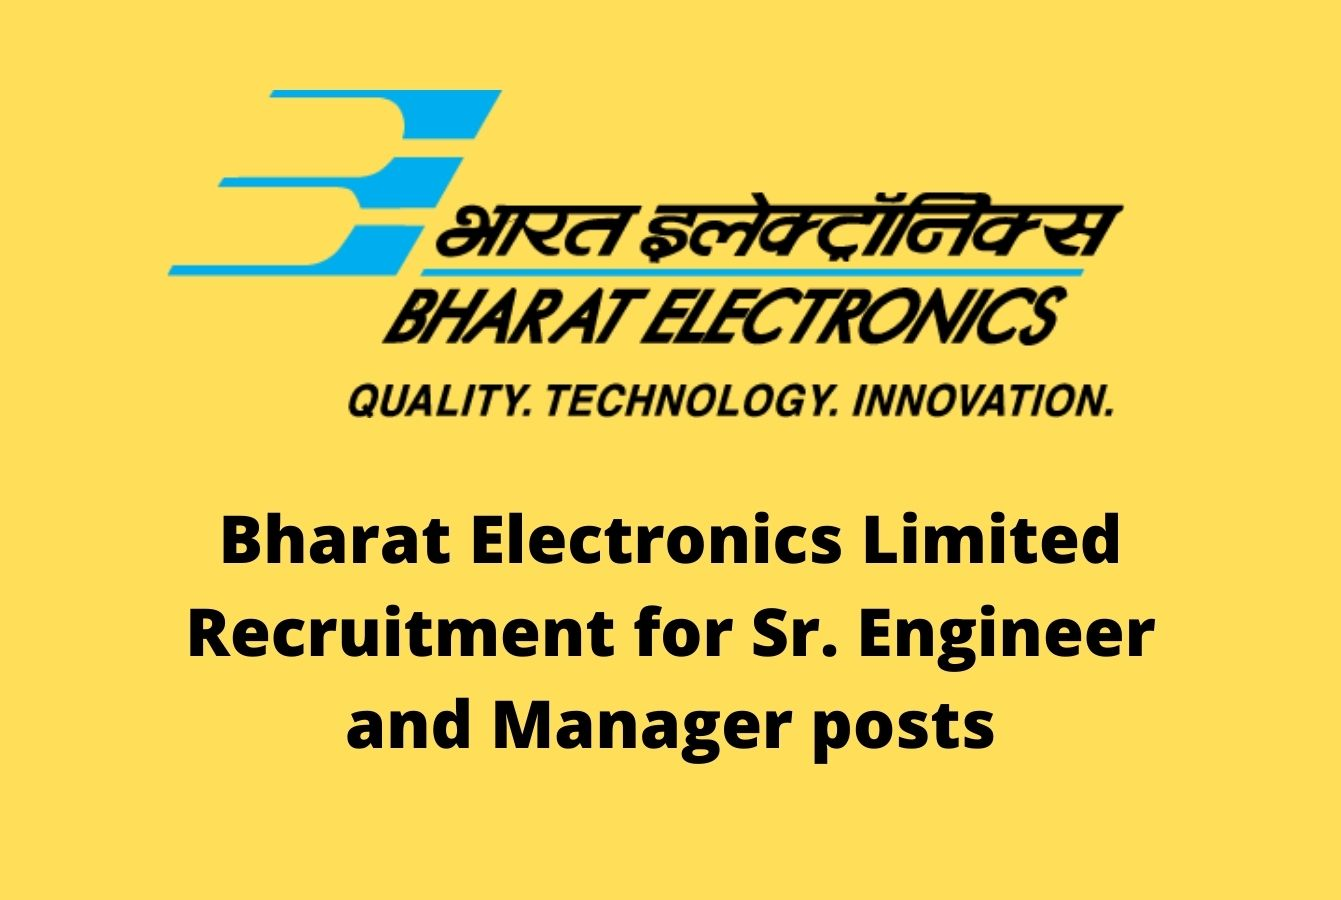 Bharat Electronics Limited Recruitment for Sr. Engineer and Manager posts